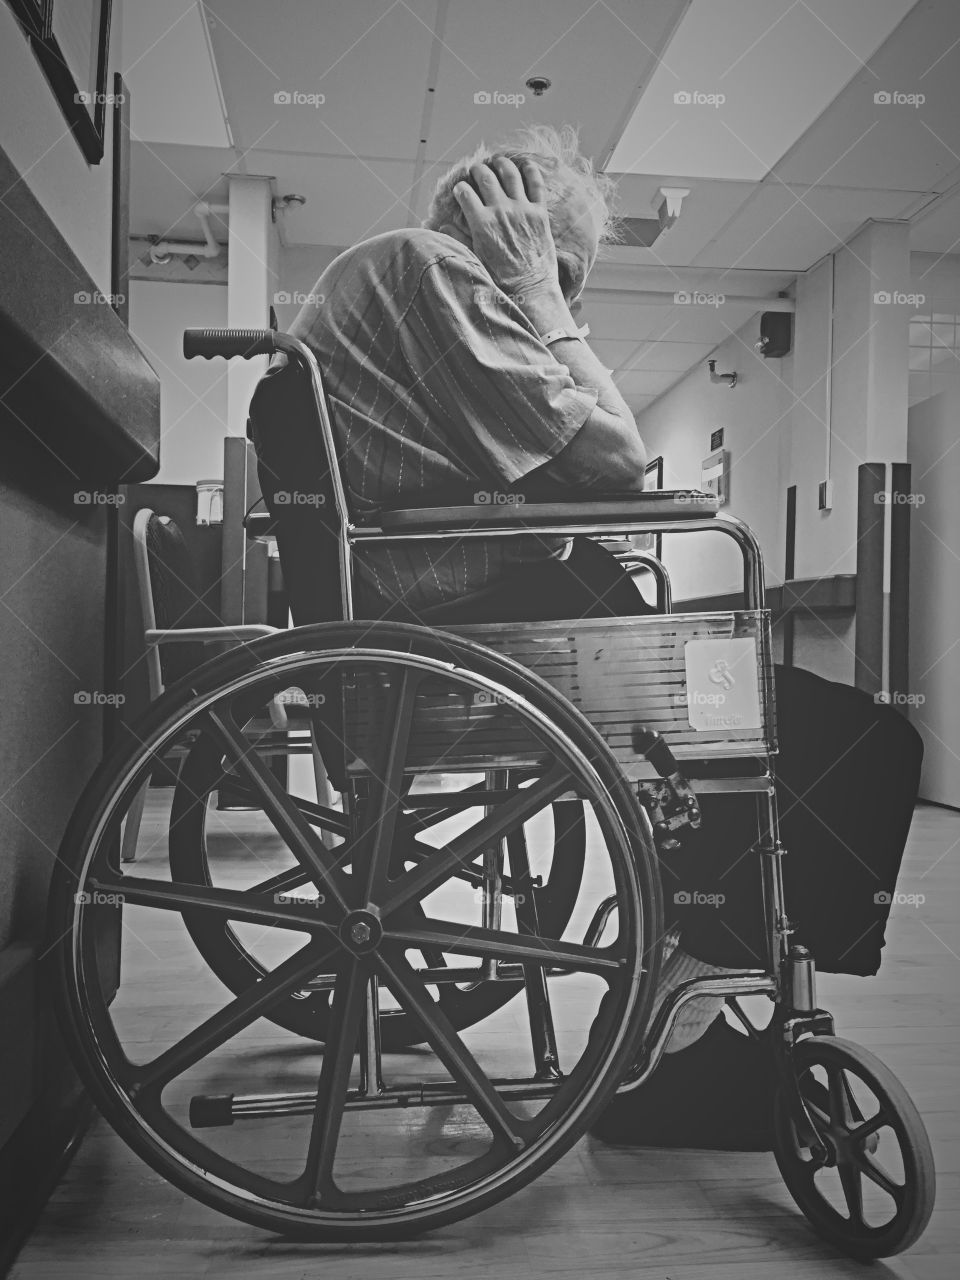 Despair . One of the many emotions the elderly experience daily living in nursing facilities.